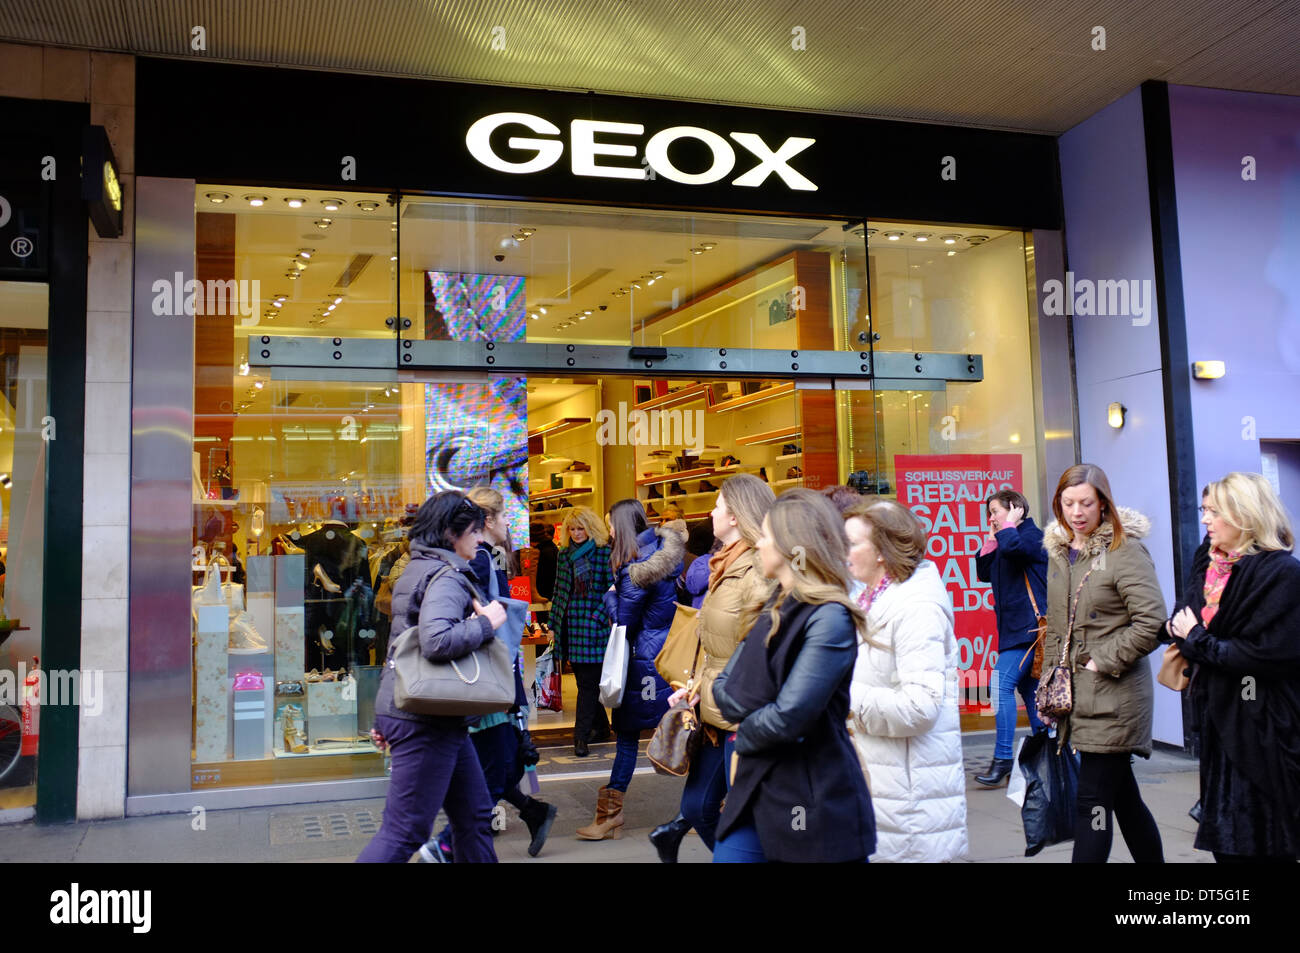 7033f2243d9 GEOX store with crowds of shoppers, Oxford Street, London - Stock Image